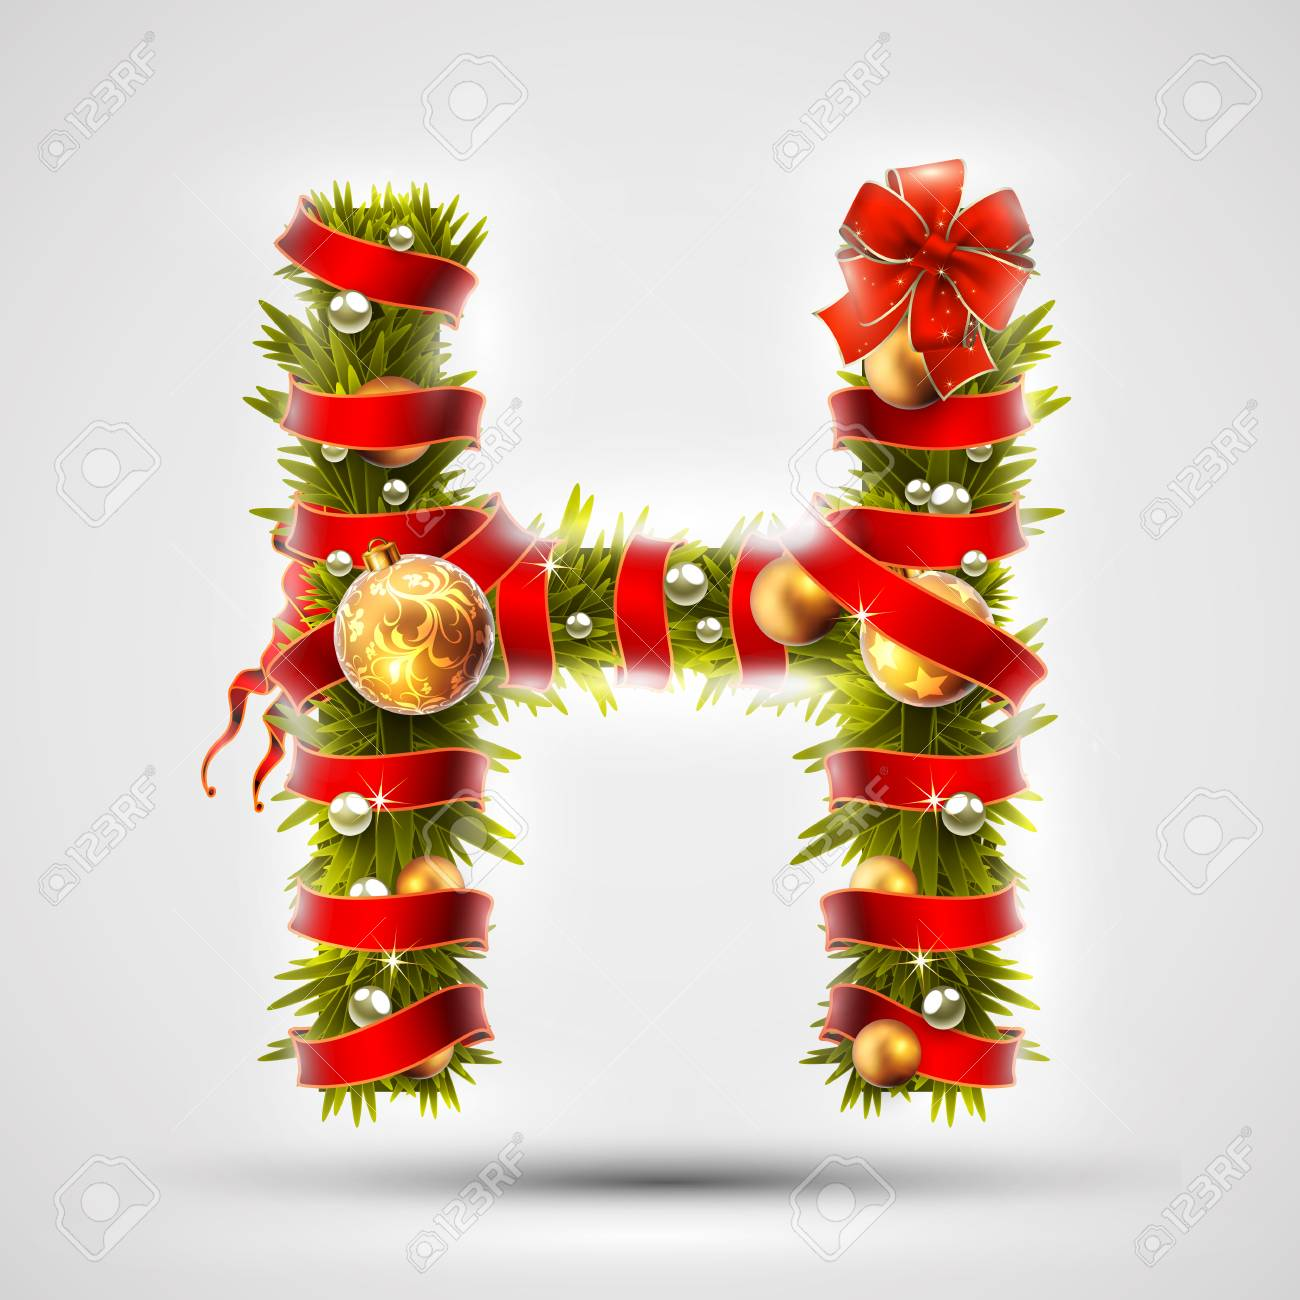 556107df05595 Christmas Font. Letter H Of Christmas Tree Branches